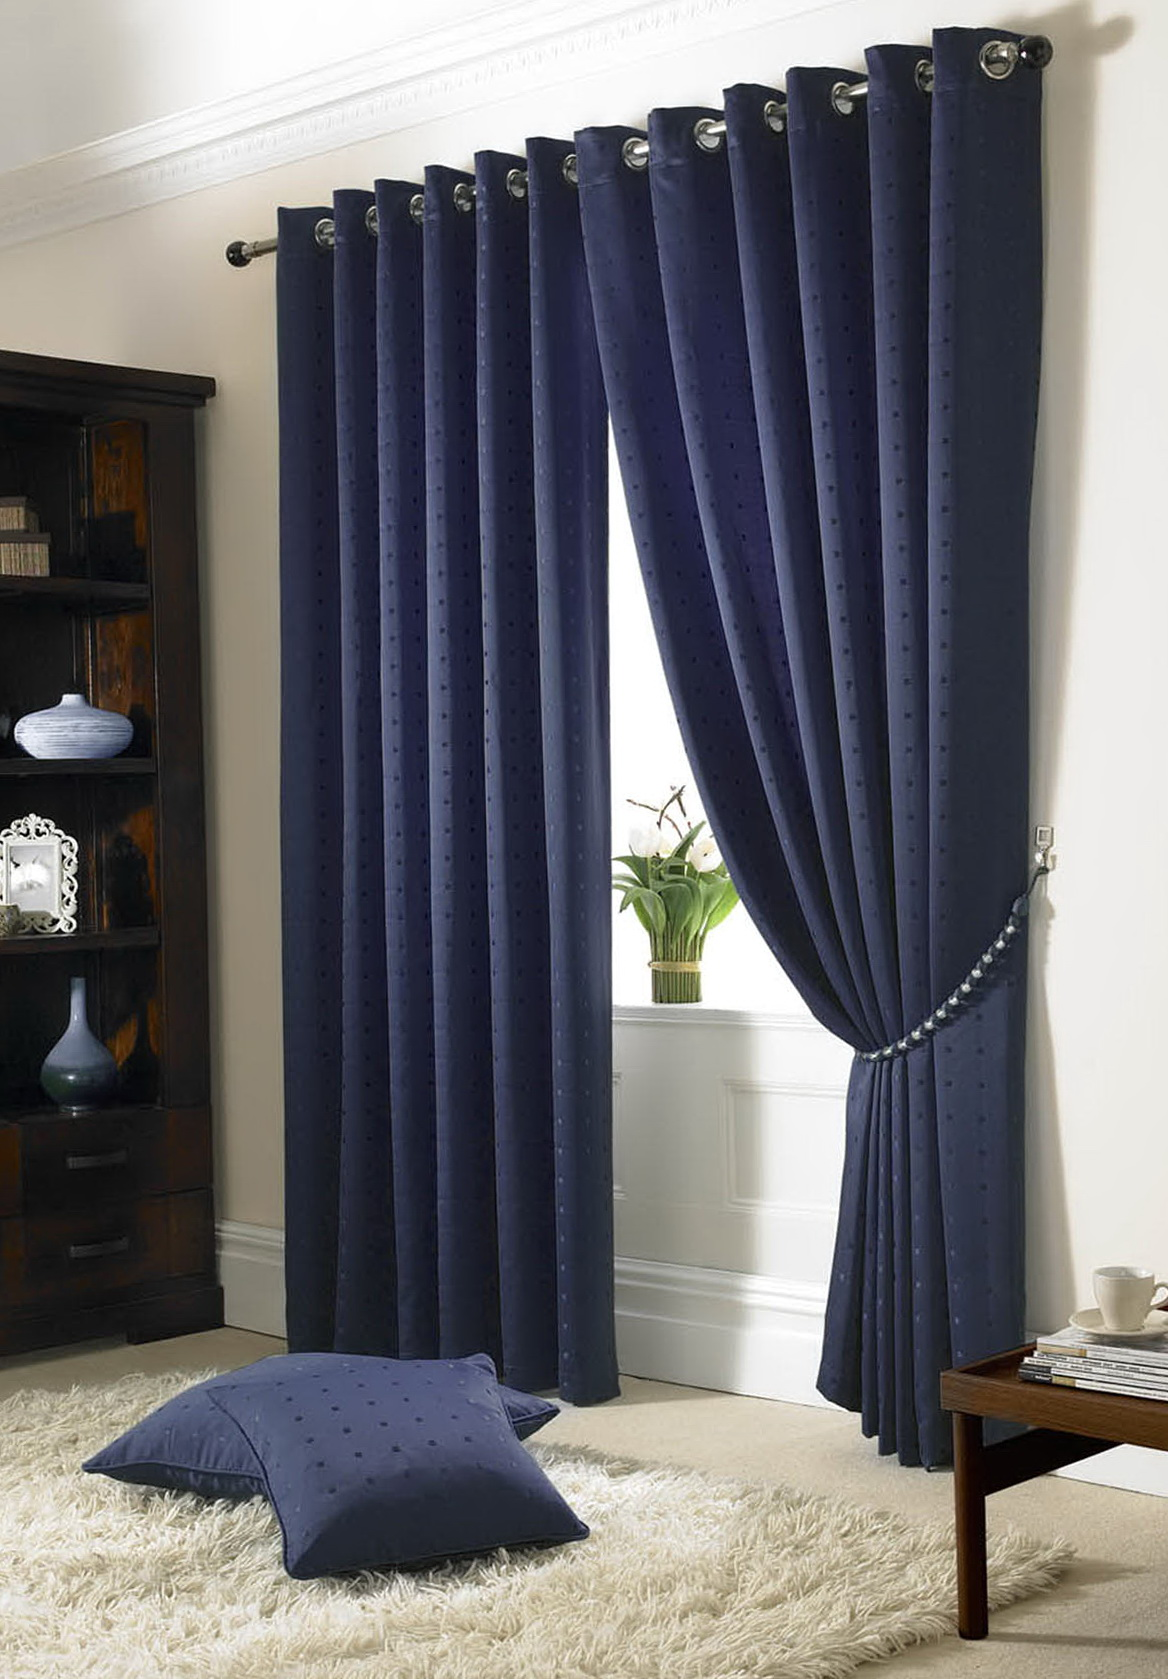 Ikea Glider Navy Blue Blackout Curtains Walmart | Home Design Ideas